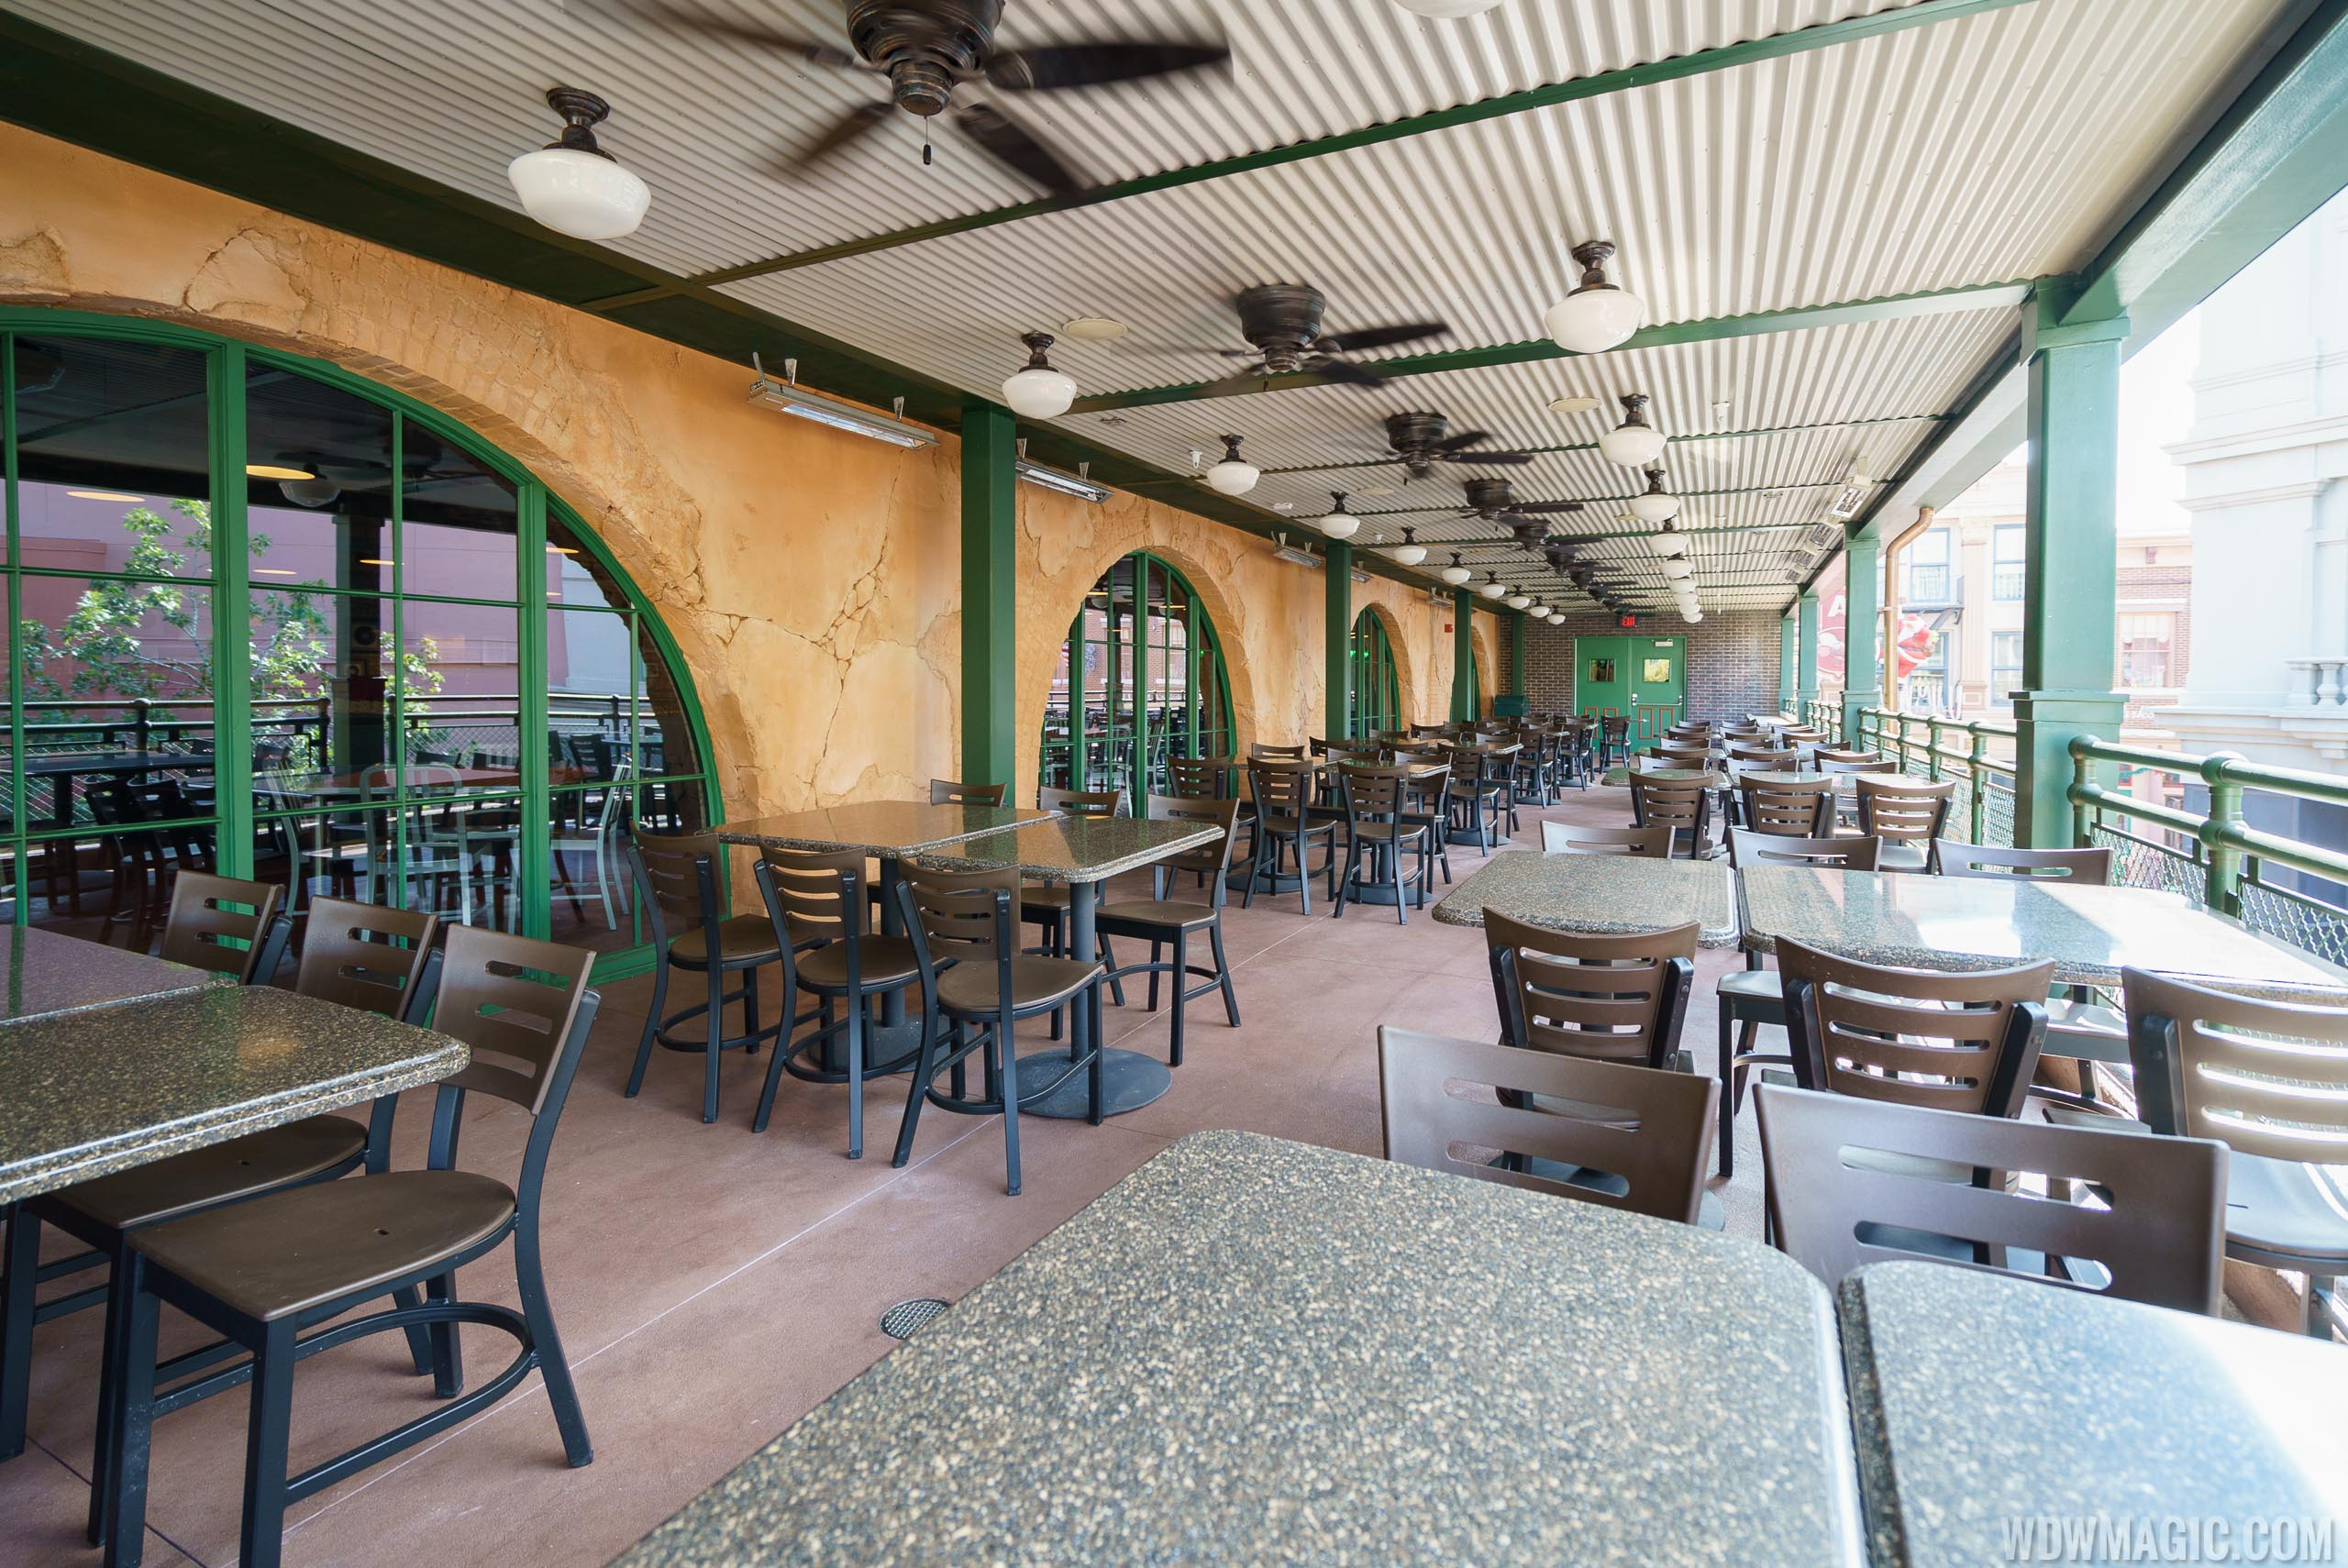 Inside PizzeRizzo - Second level outdoor balcony dining